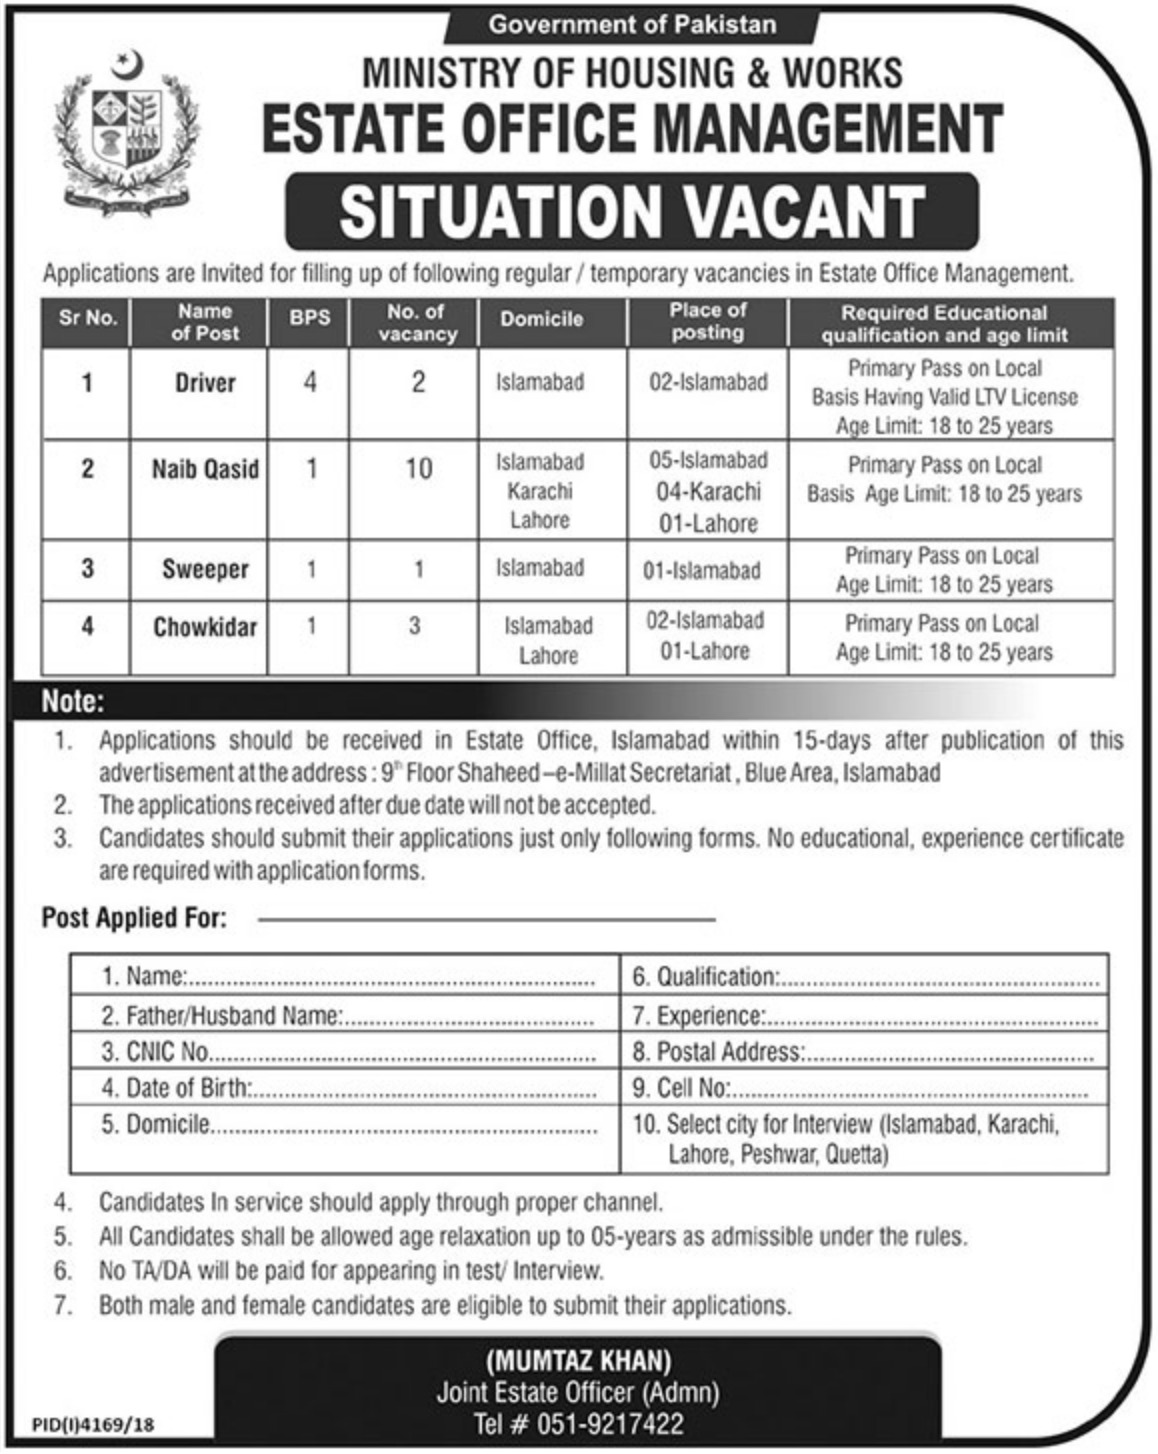 Ministry of Housing & Works Jobs 2019 Estate Office Management Latest